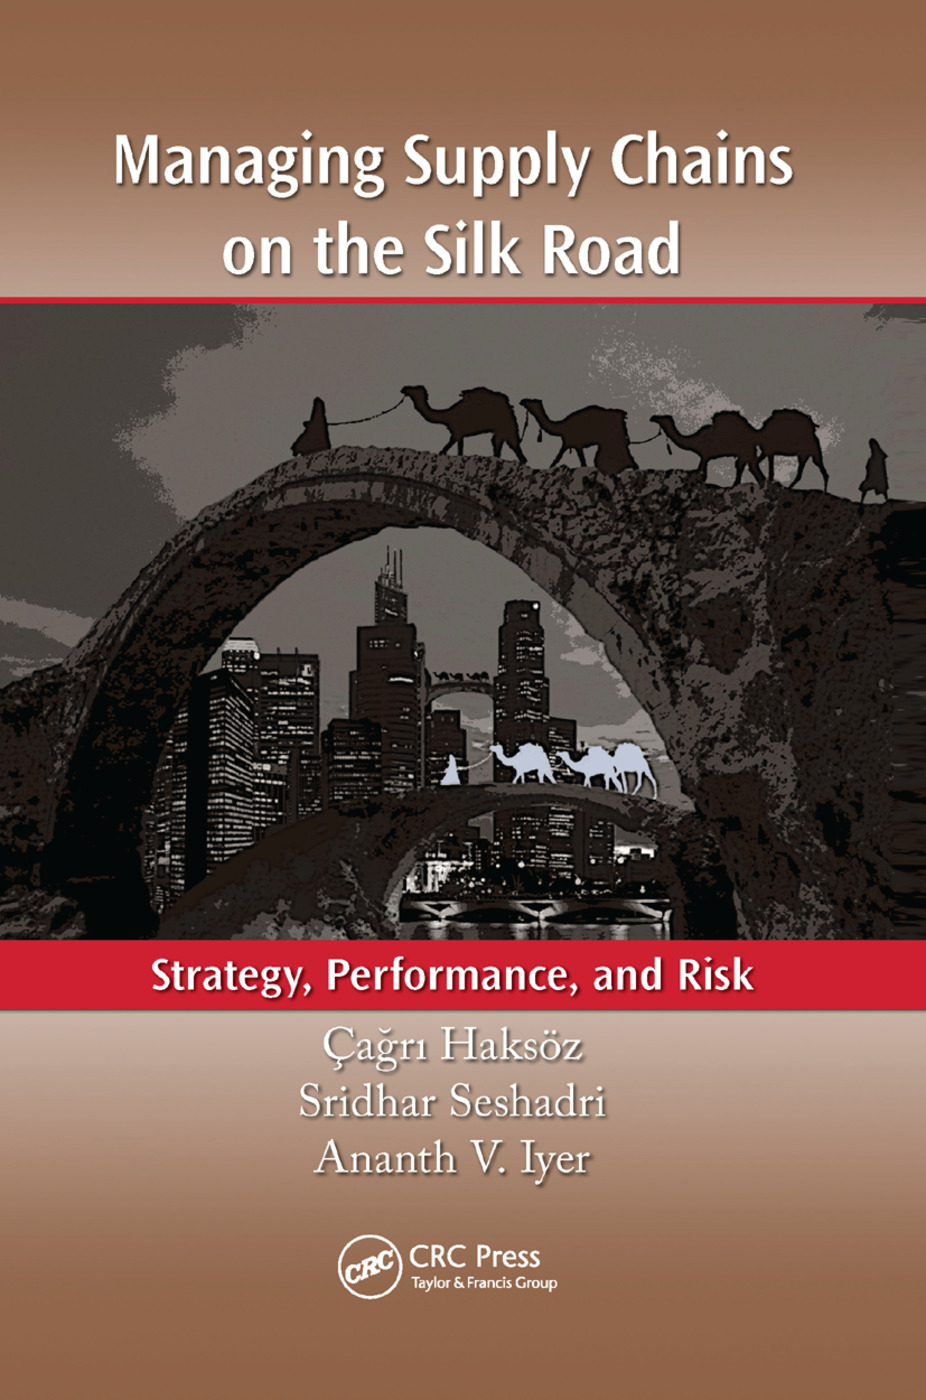 Managing Supply Chains on the Silk Road